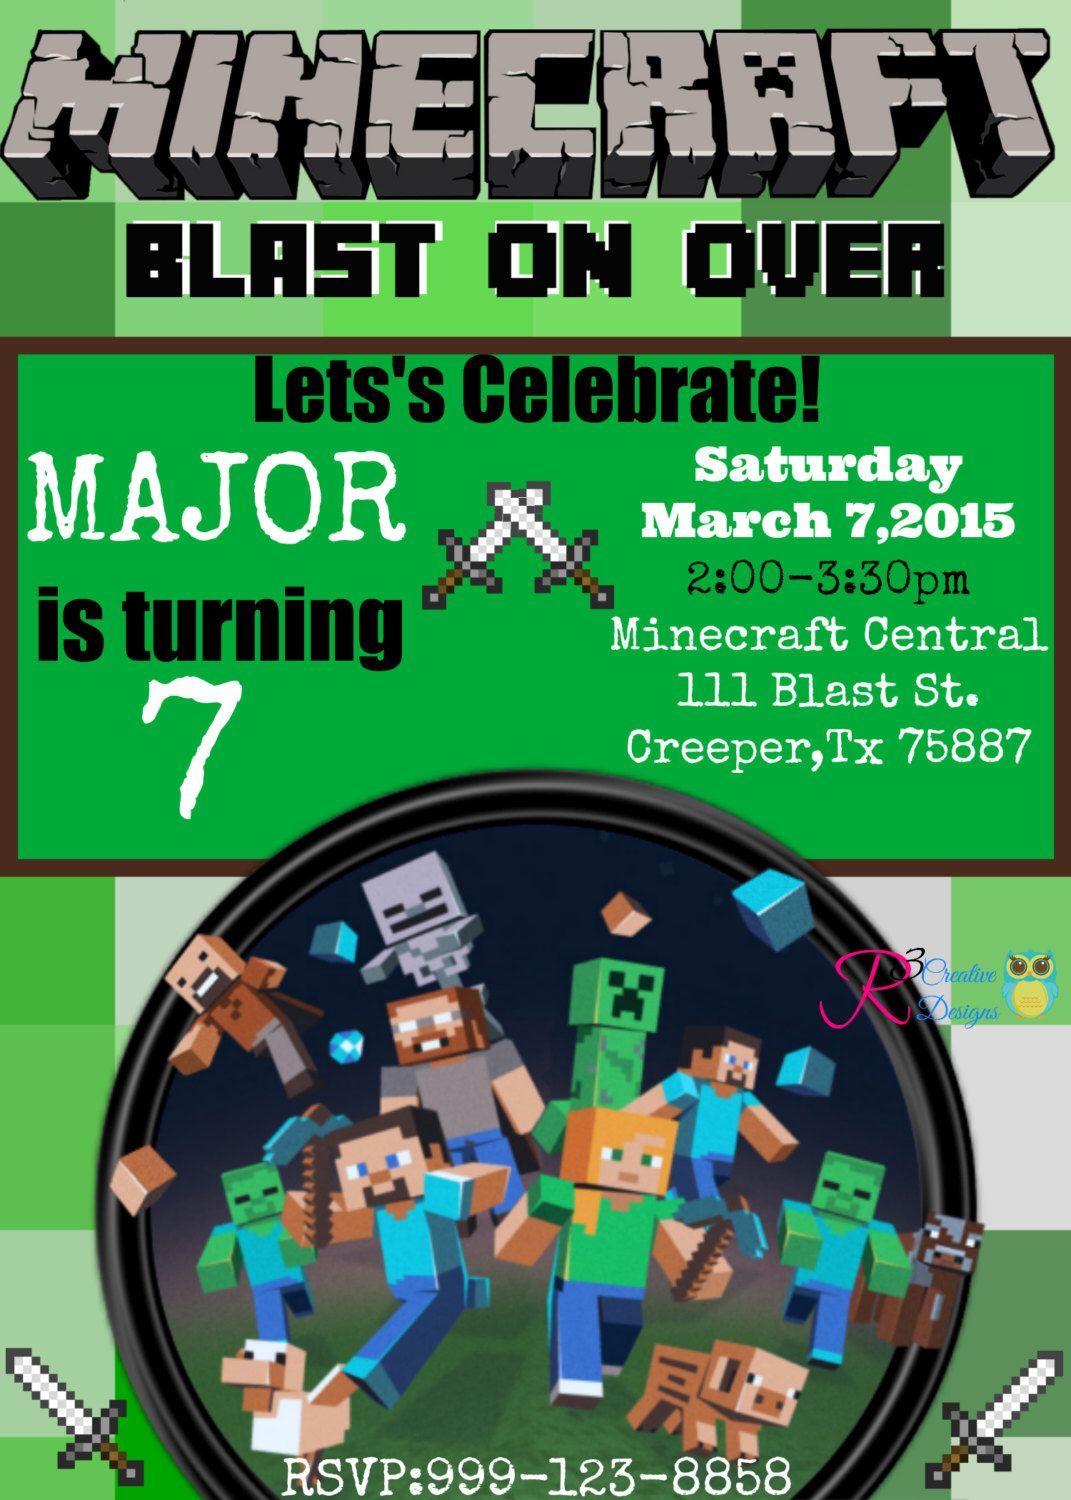 Minecraft Inspired Party Invitation by R3CreativeDesigns on Etsy https://www.etsy.com/listing/215057206/minecraft-inspired-party-invitation